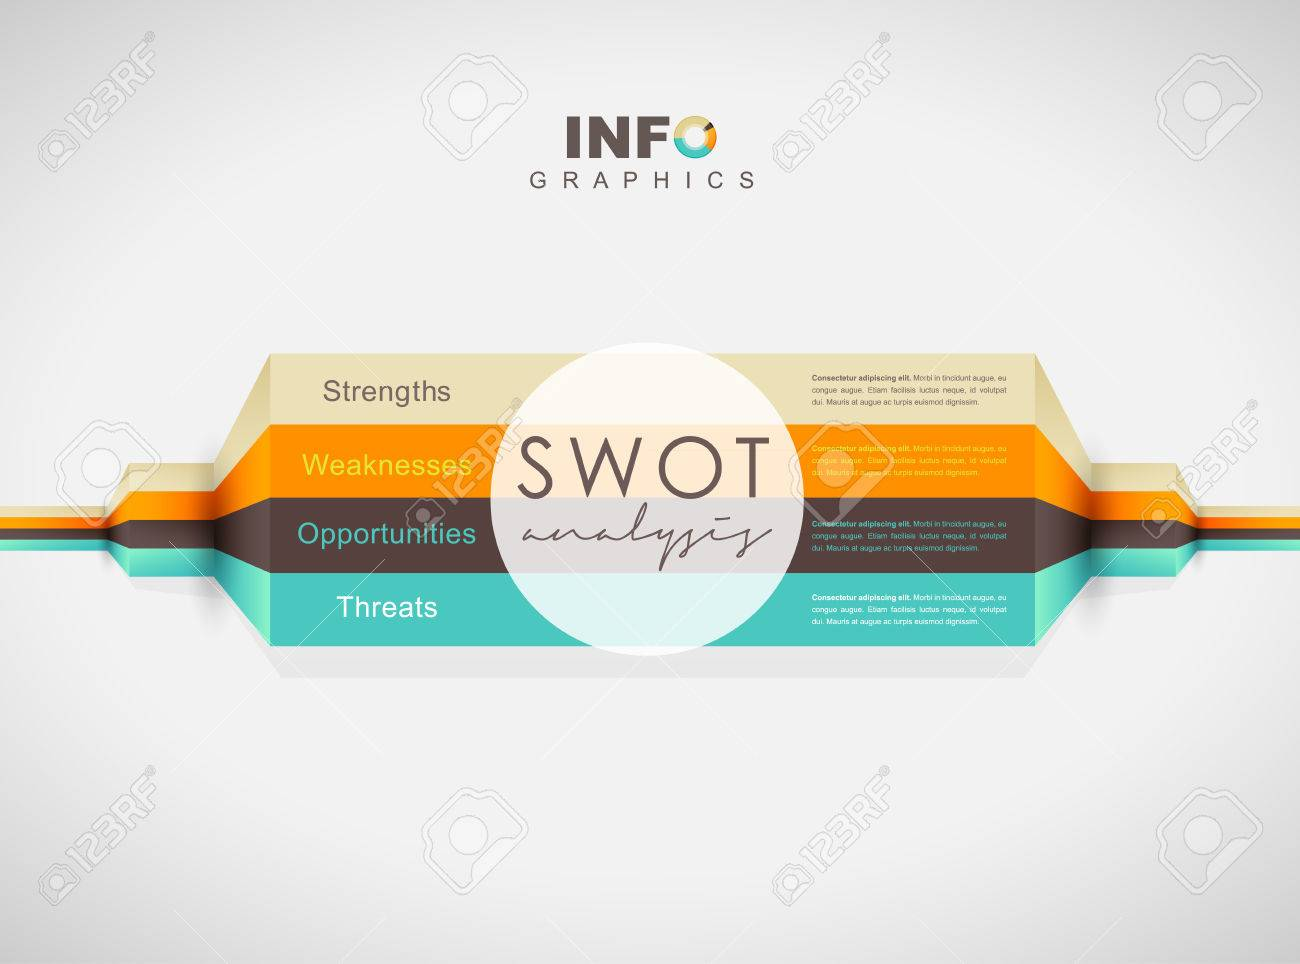 swot strengths weaknesses opportunities threats business swot strengths weaknesses opportunities threats business strategy mind map concept for presentations